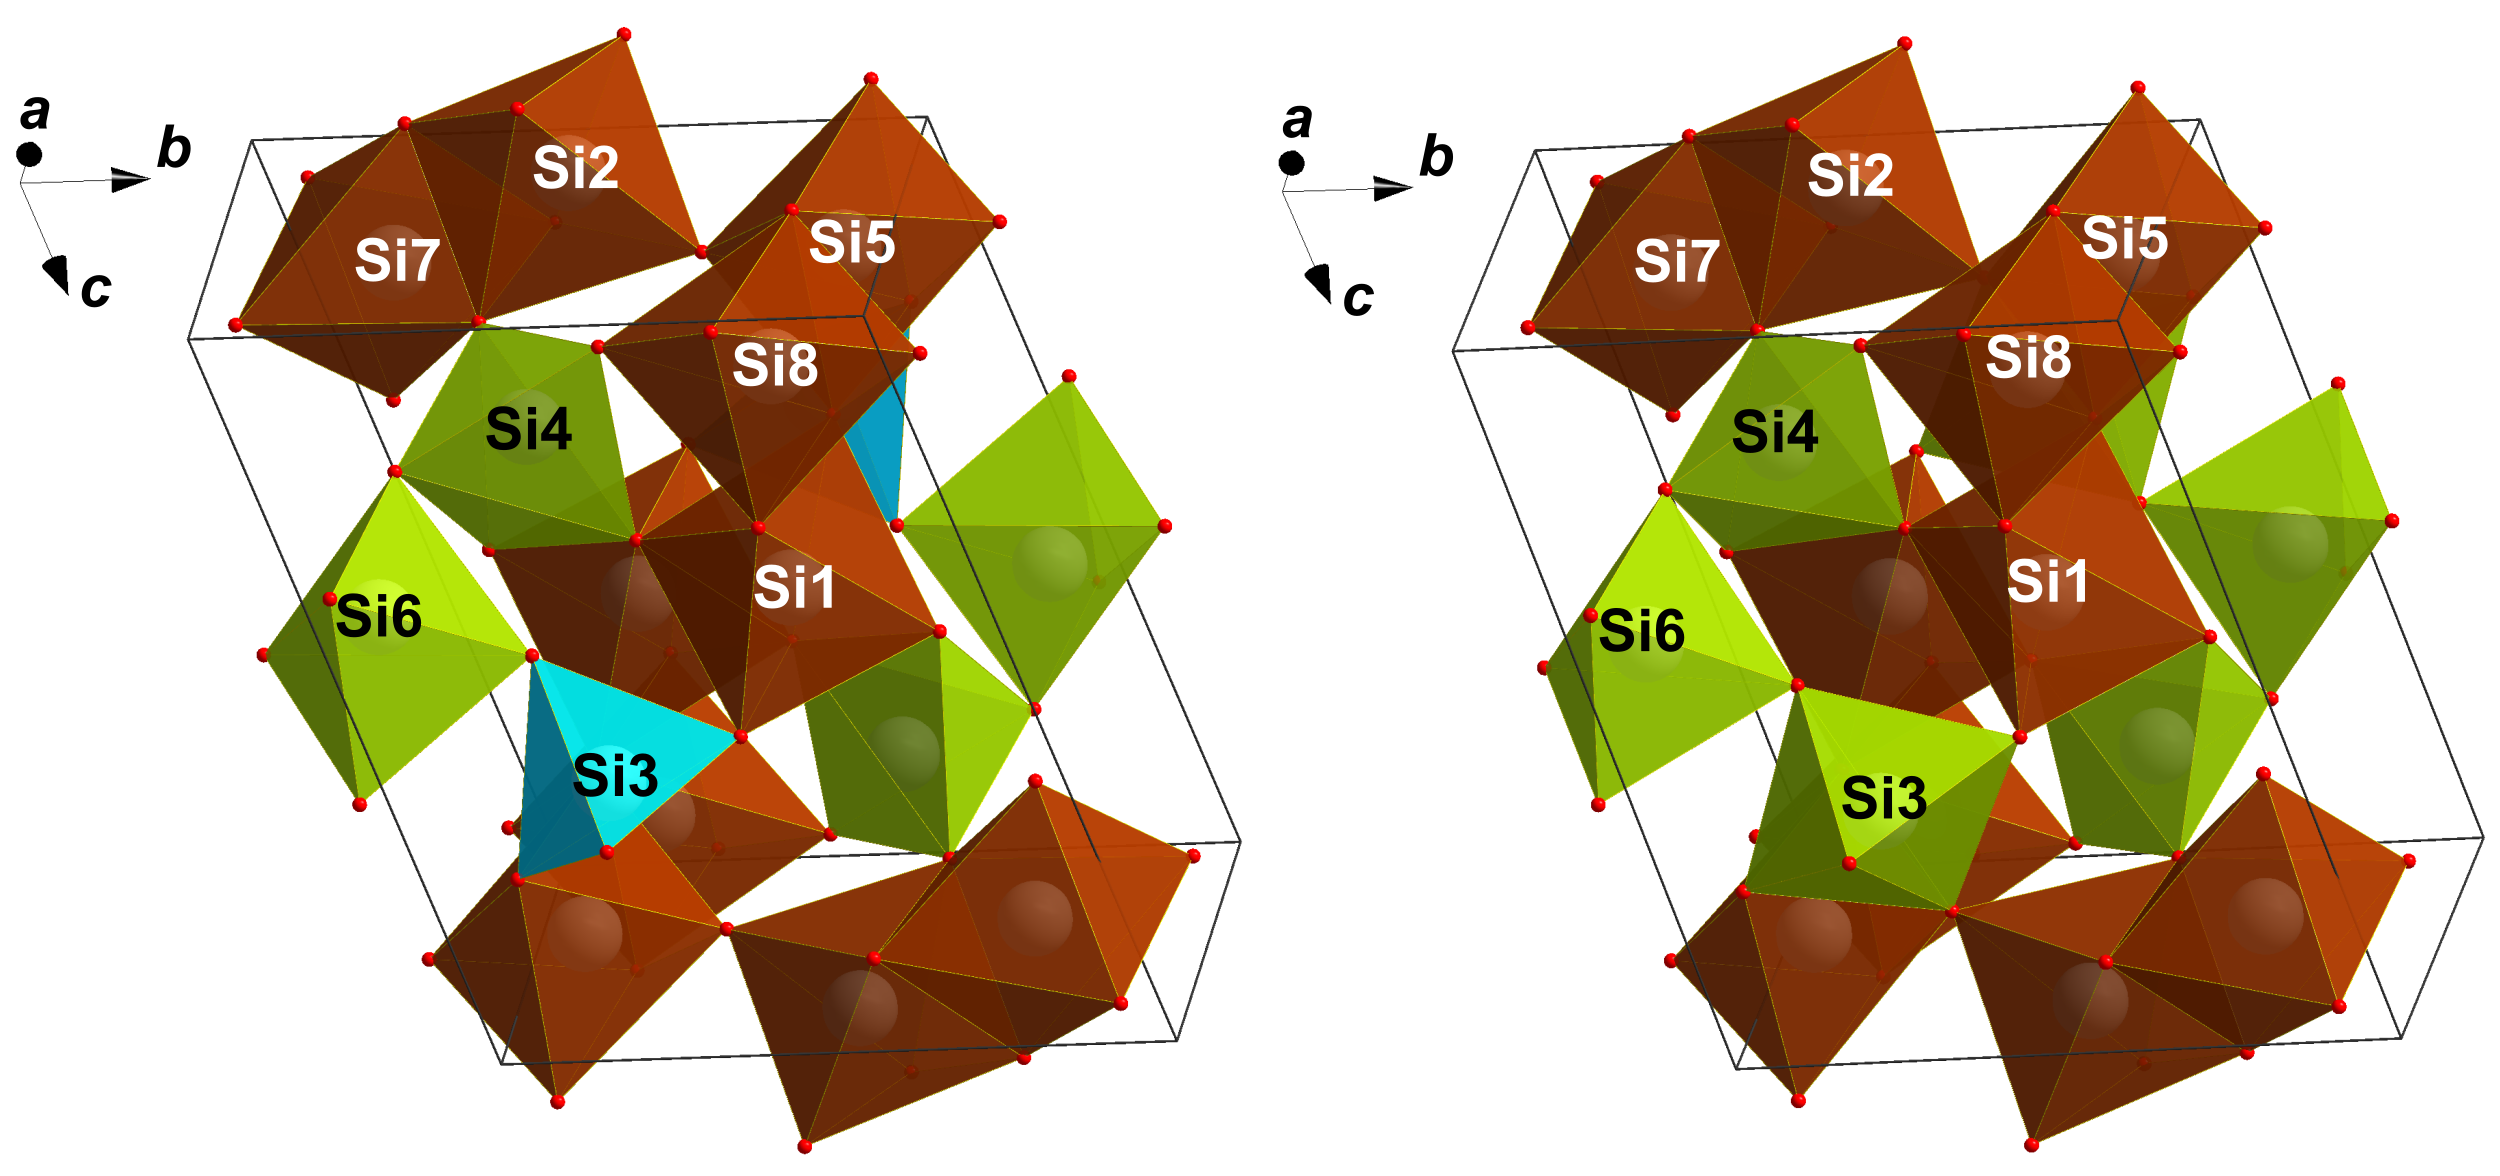 Crystal structures of coesite-IV and coesite-V